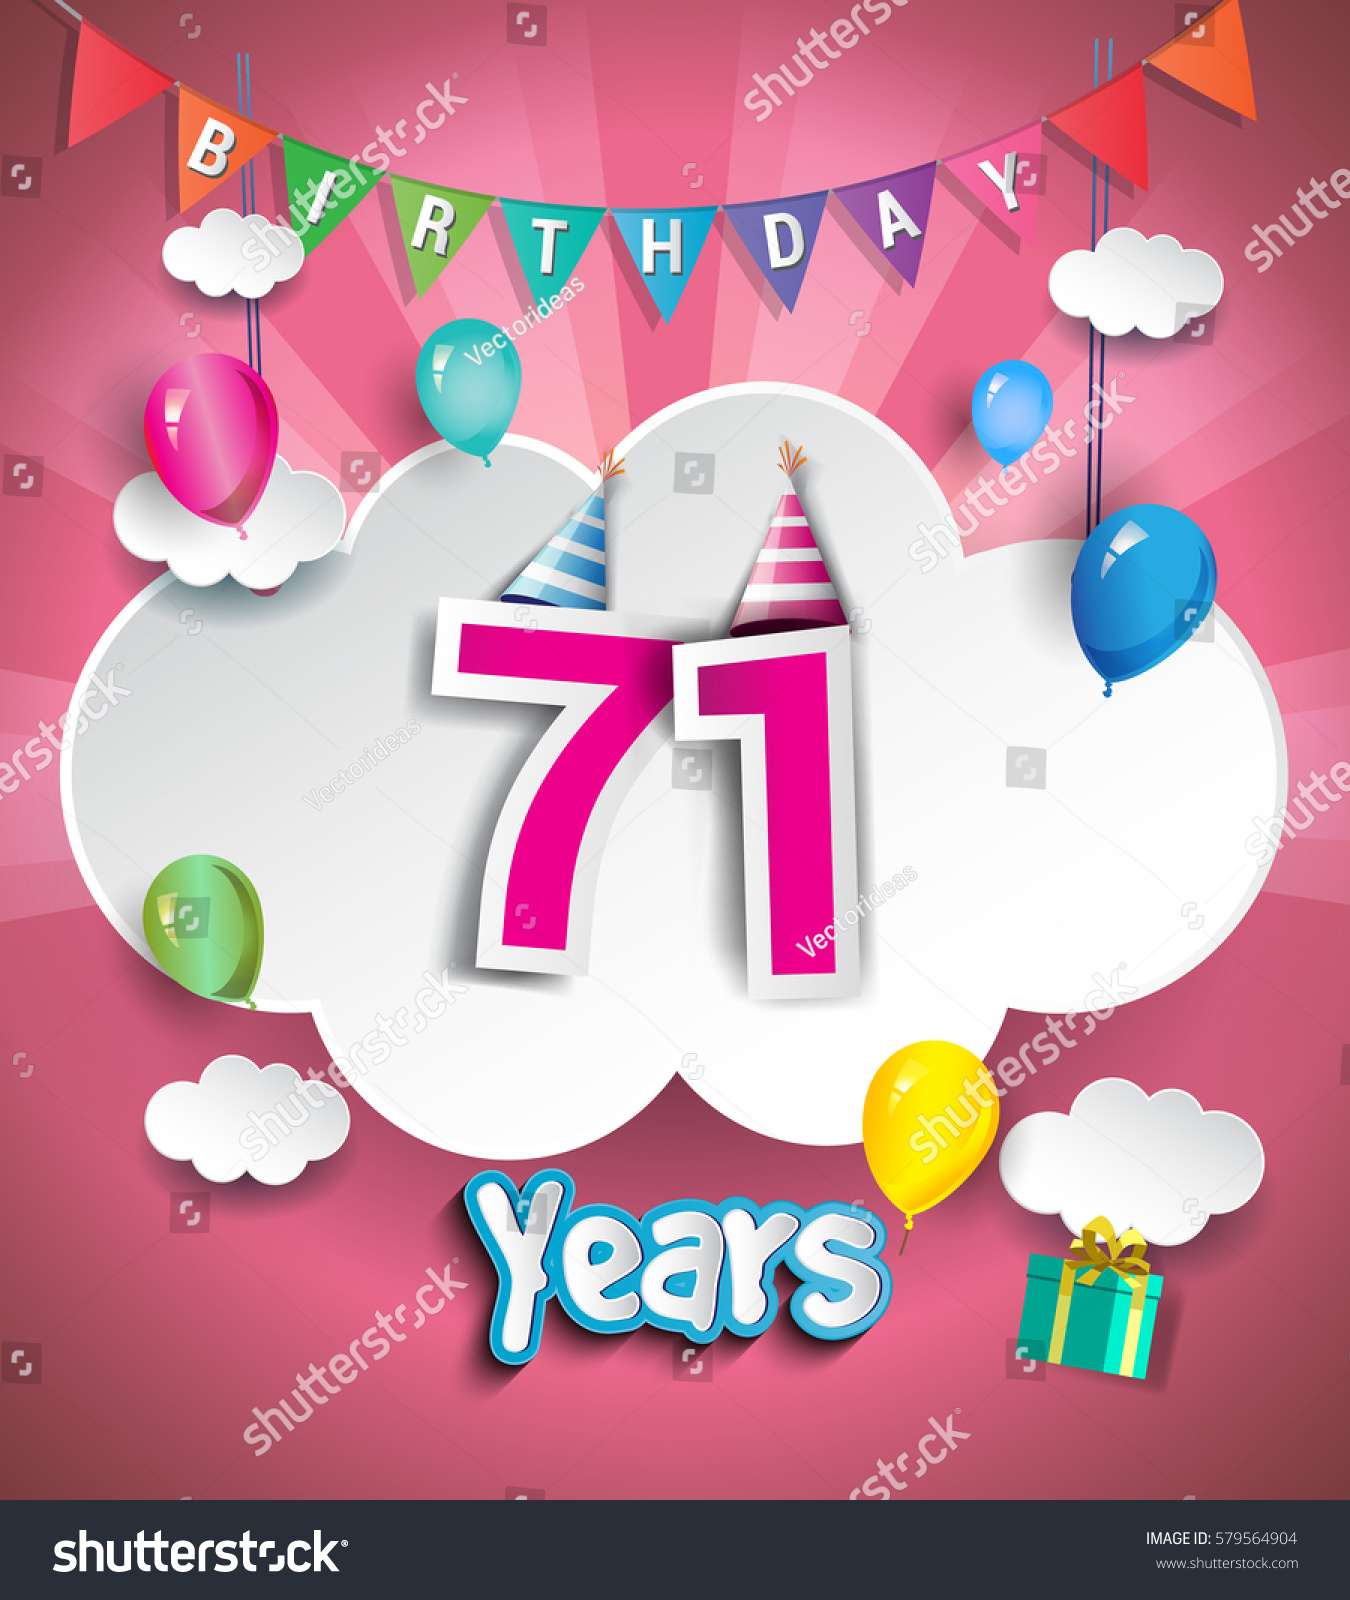 71 Years Birthday Design Greeting Cards Stock Vector Royalty Free